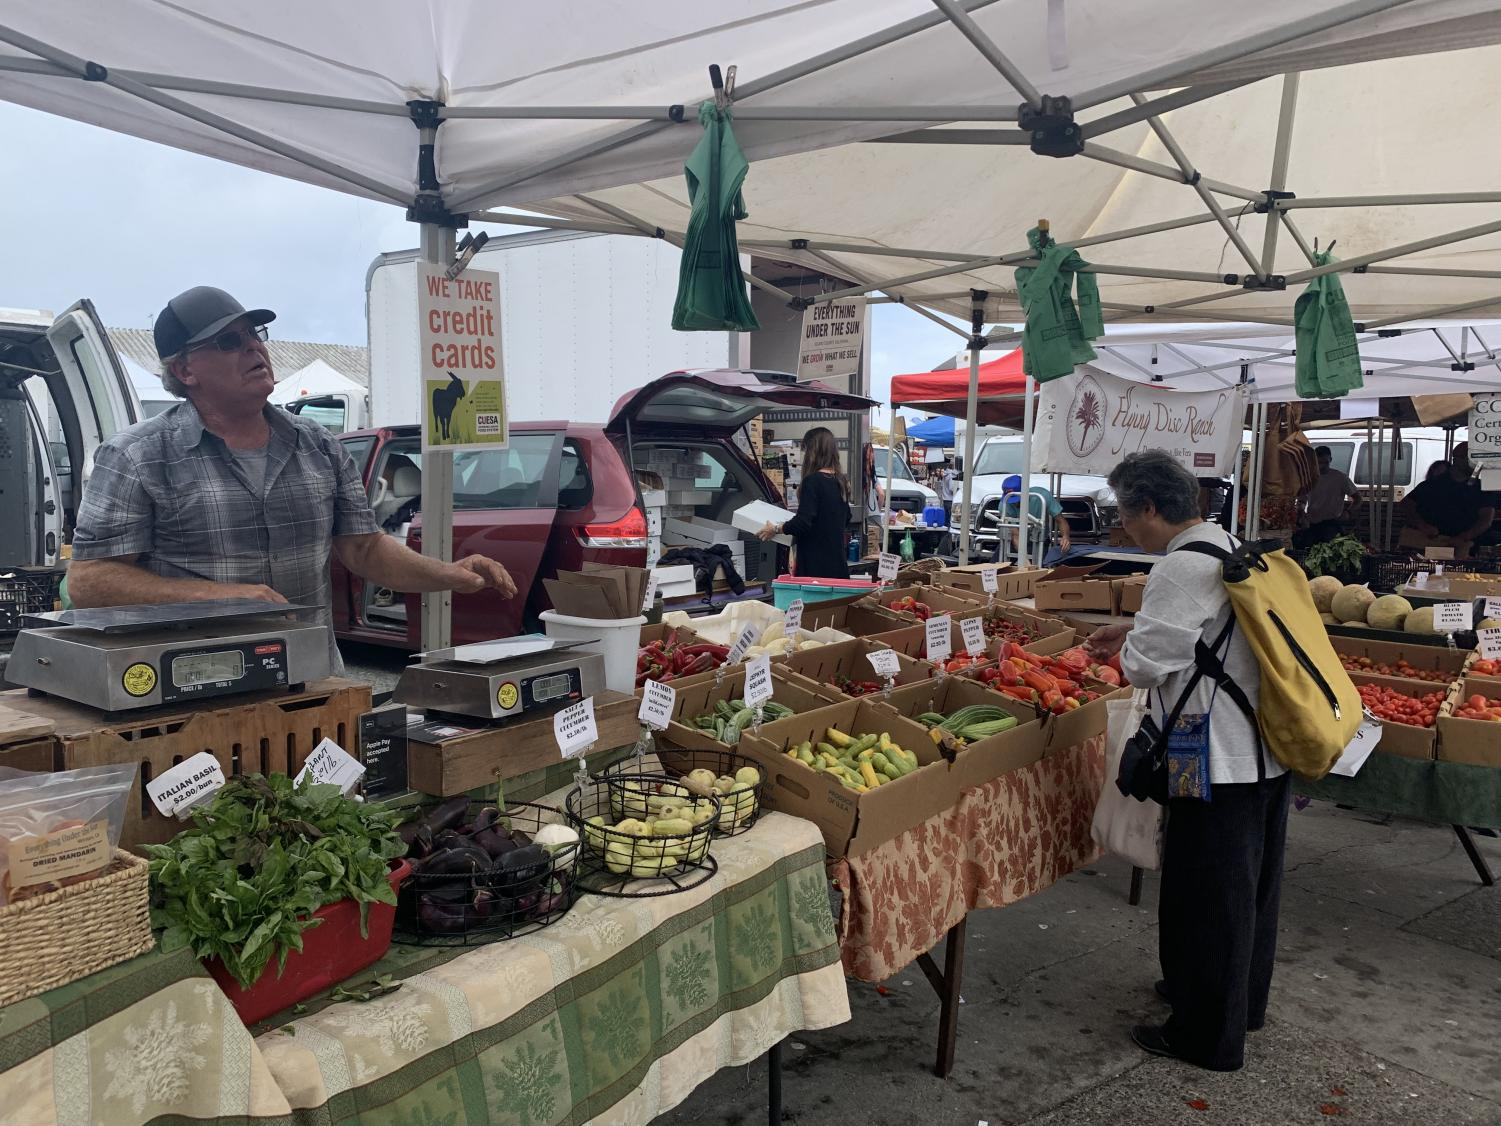 Farmer Bill Crepps of the farm Everything Under the Sun sells his dried fruit to a customer at the Ferry Plaza Farmers Market. Crepps farms his fruits and vegetables using sun-drying methods that achieve organic status and employ sustainable methods.